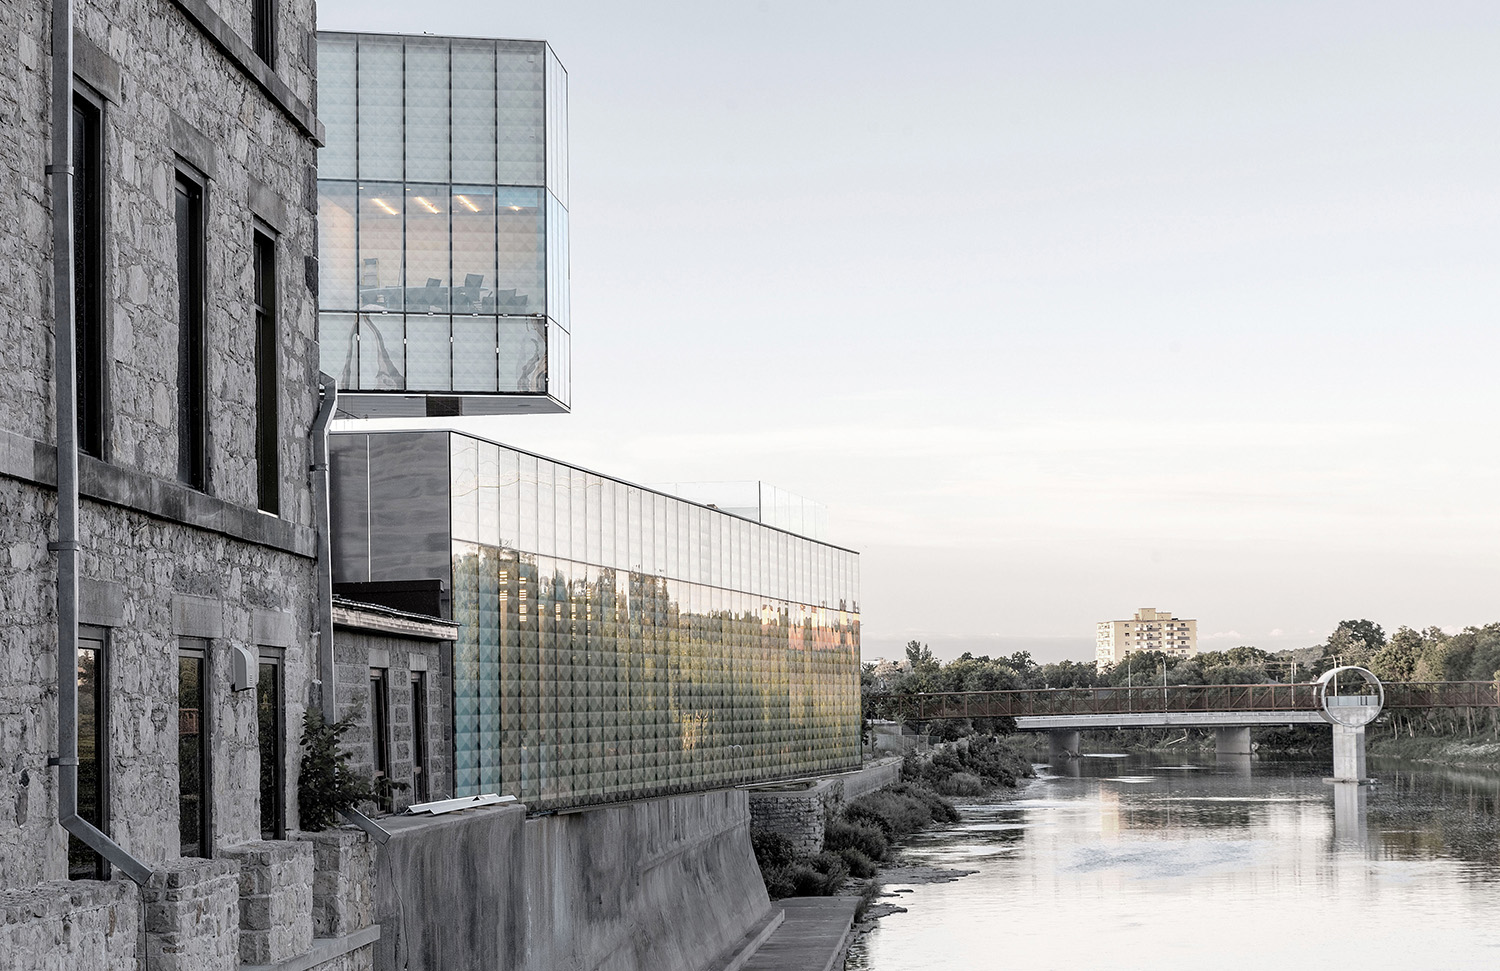 Bridges span the Grand River on either side of the building. RDHA - Sanjay Chauhan